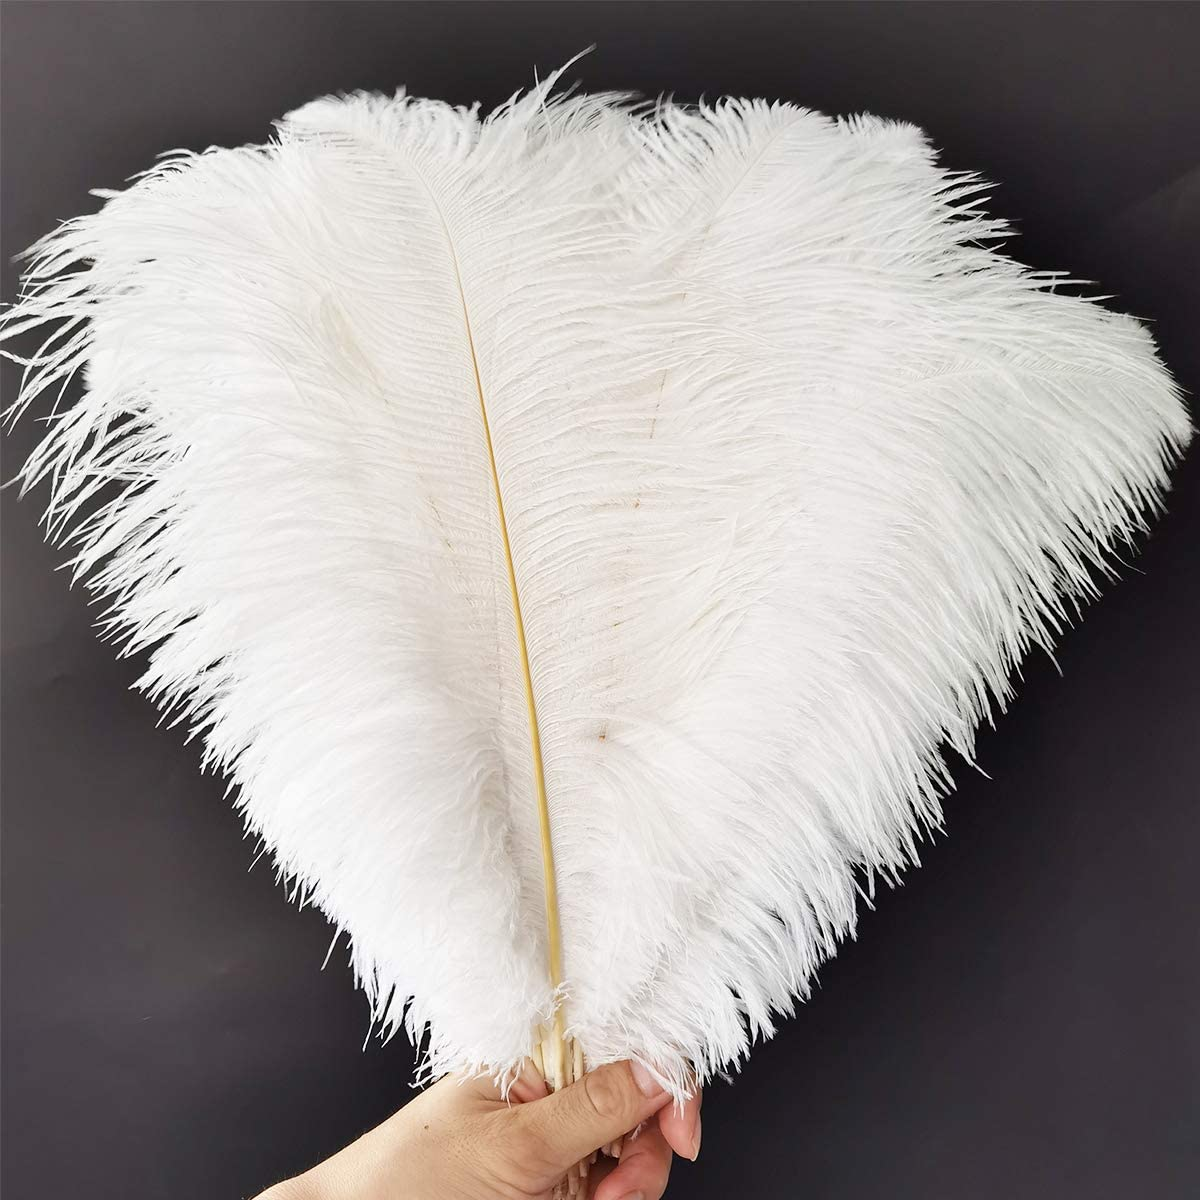 Happy Feather 16-18 inch White Ostrich Feathers Craft for Wedding Party Centerpieces Home Decoration DIY Craft Pack of 5